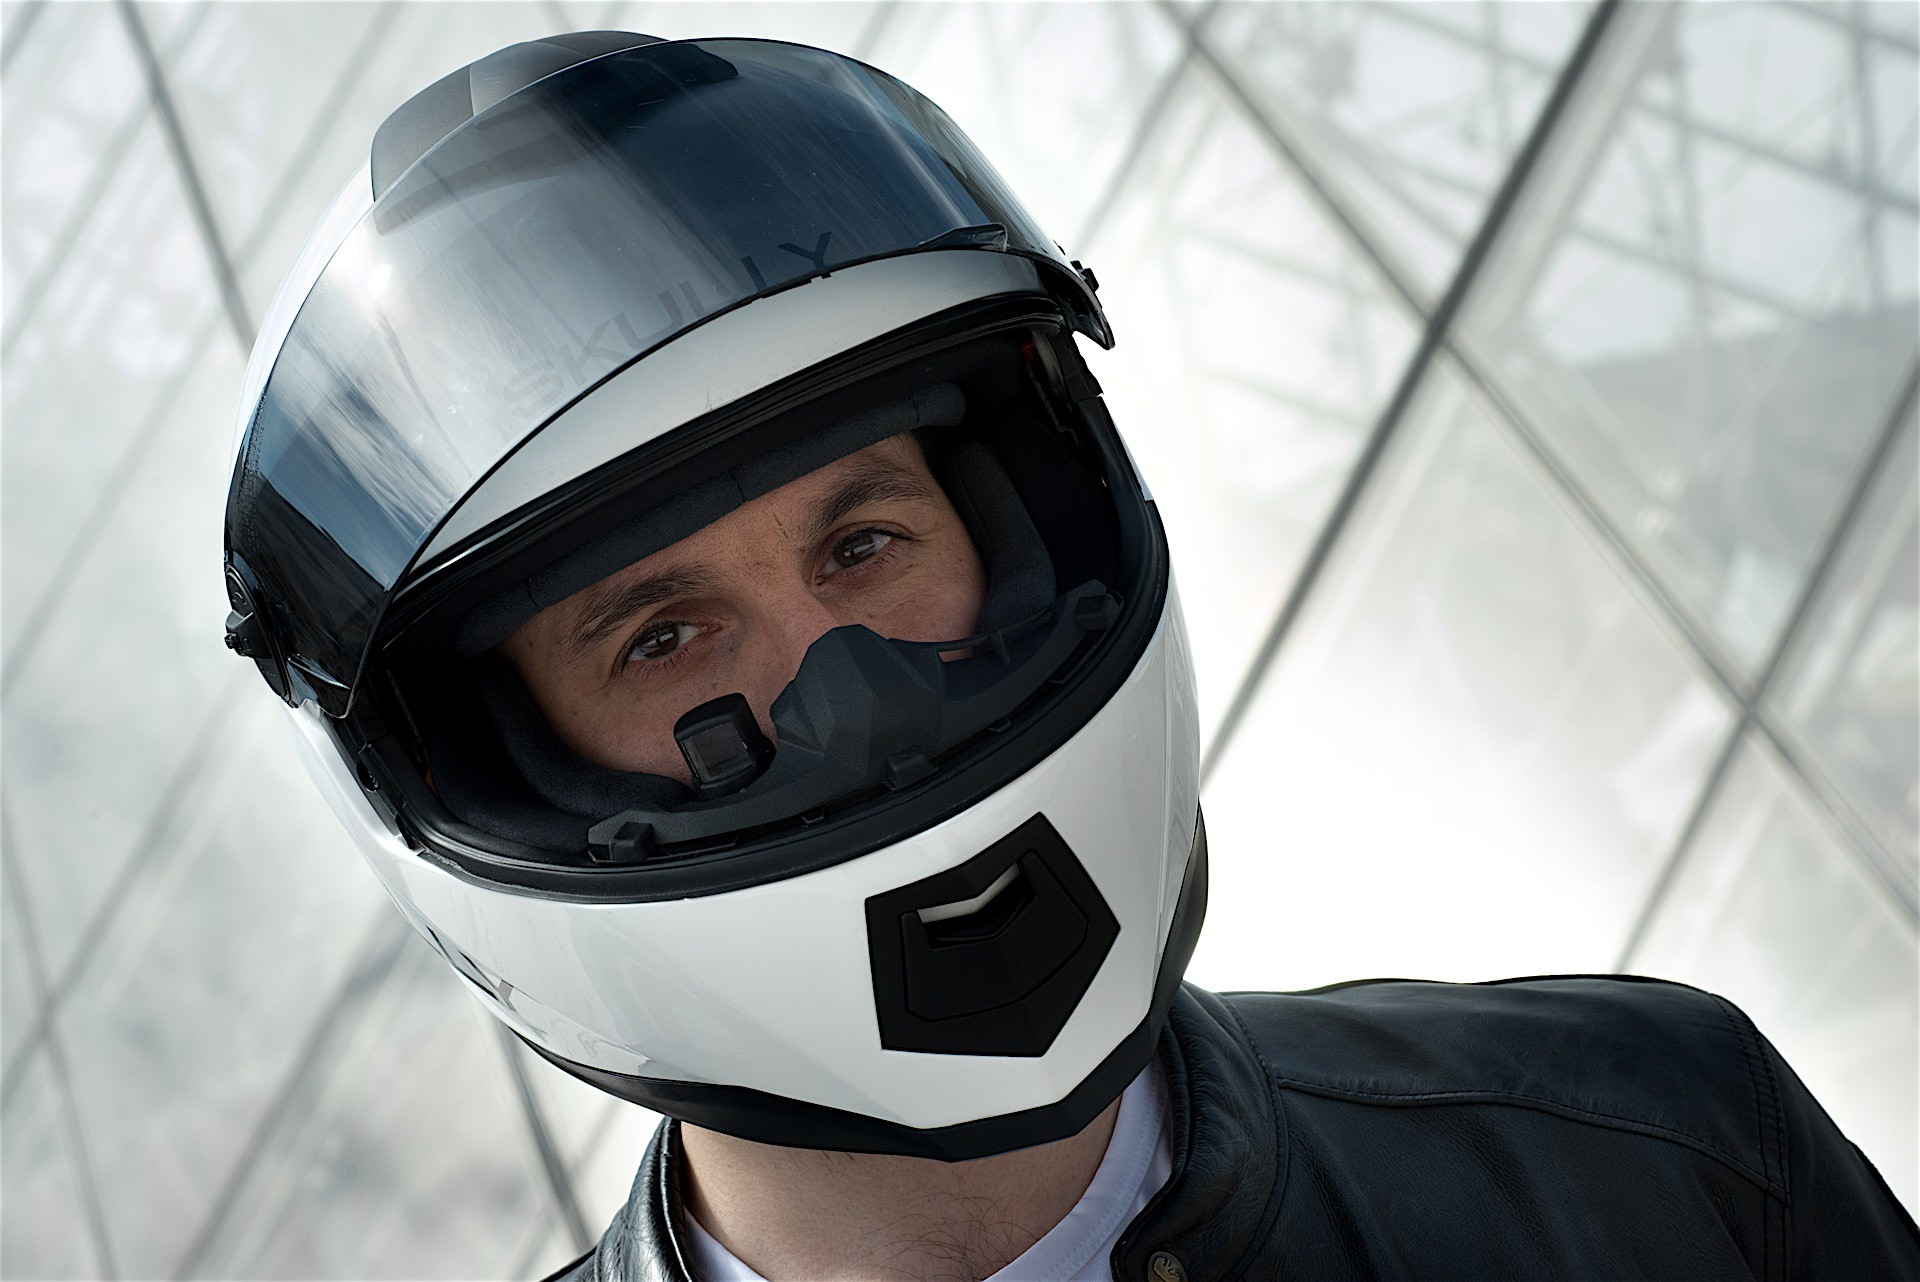 Livemap The Future Of Motorcycle Helmets And Navigation